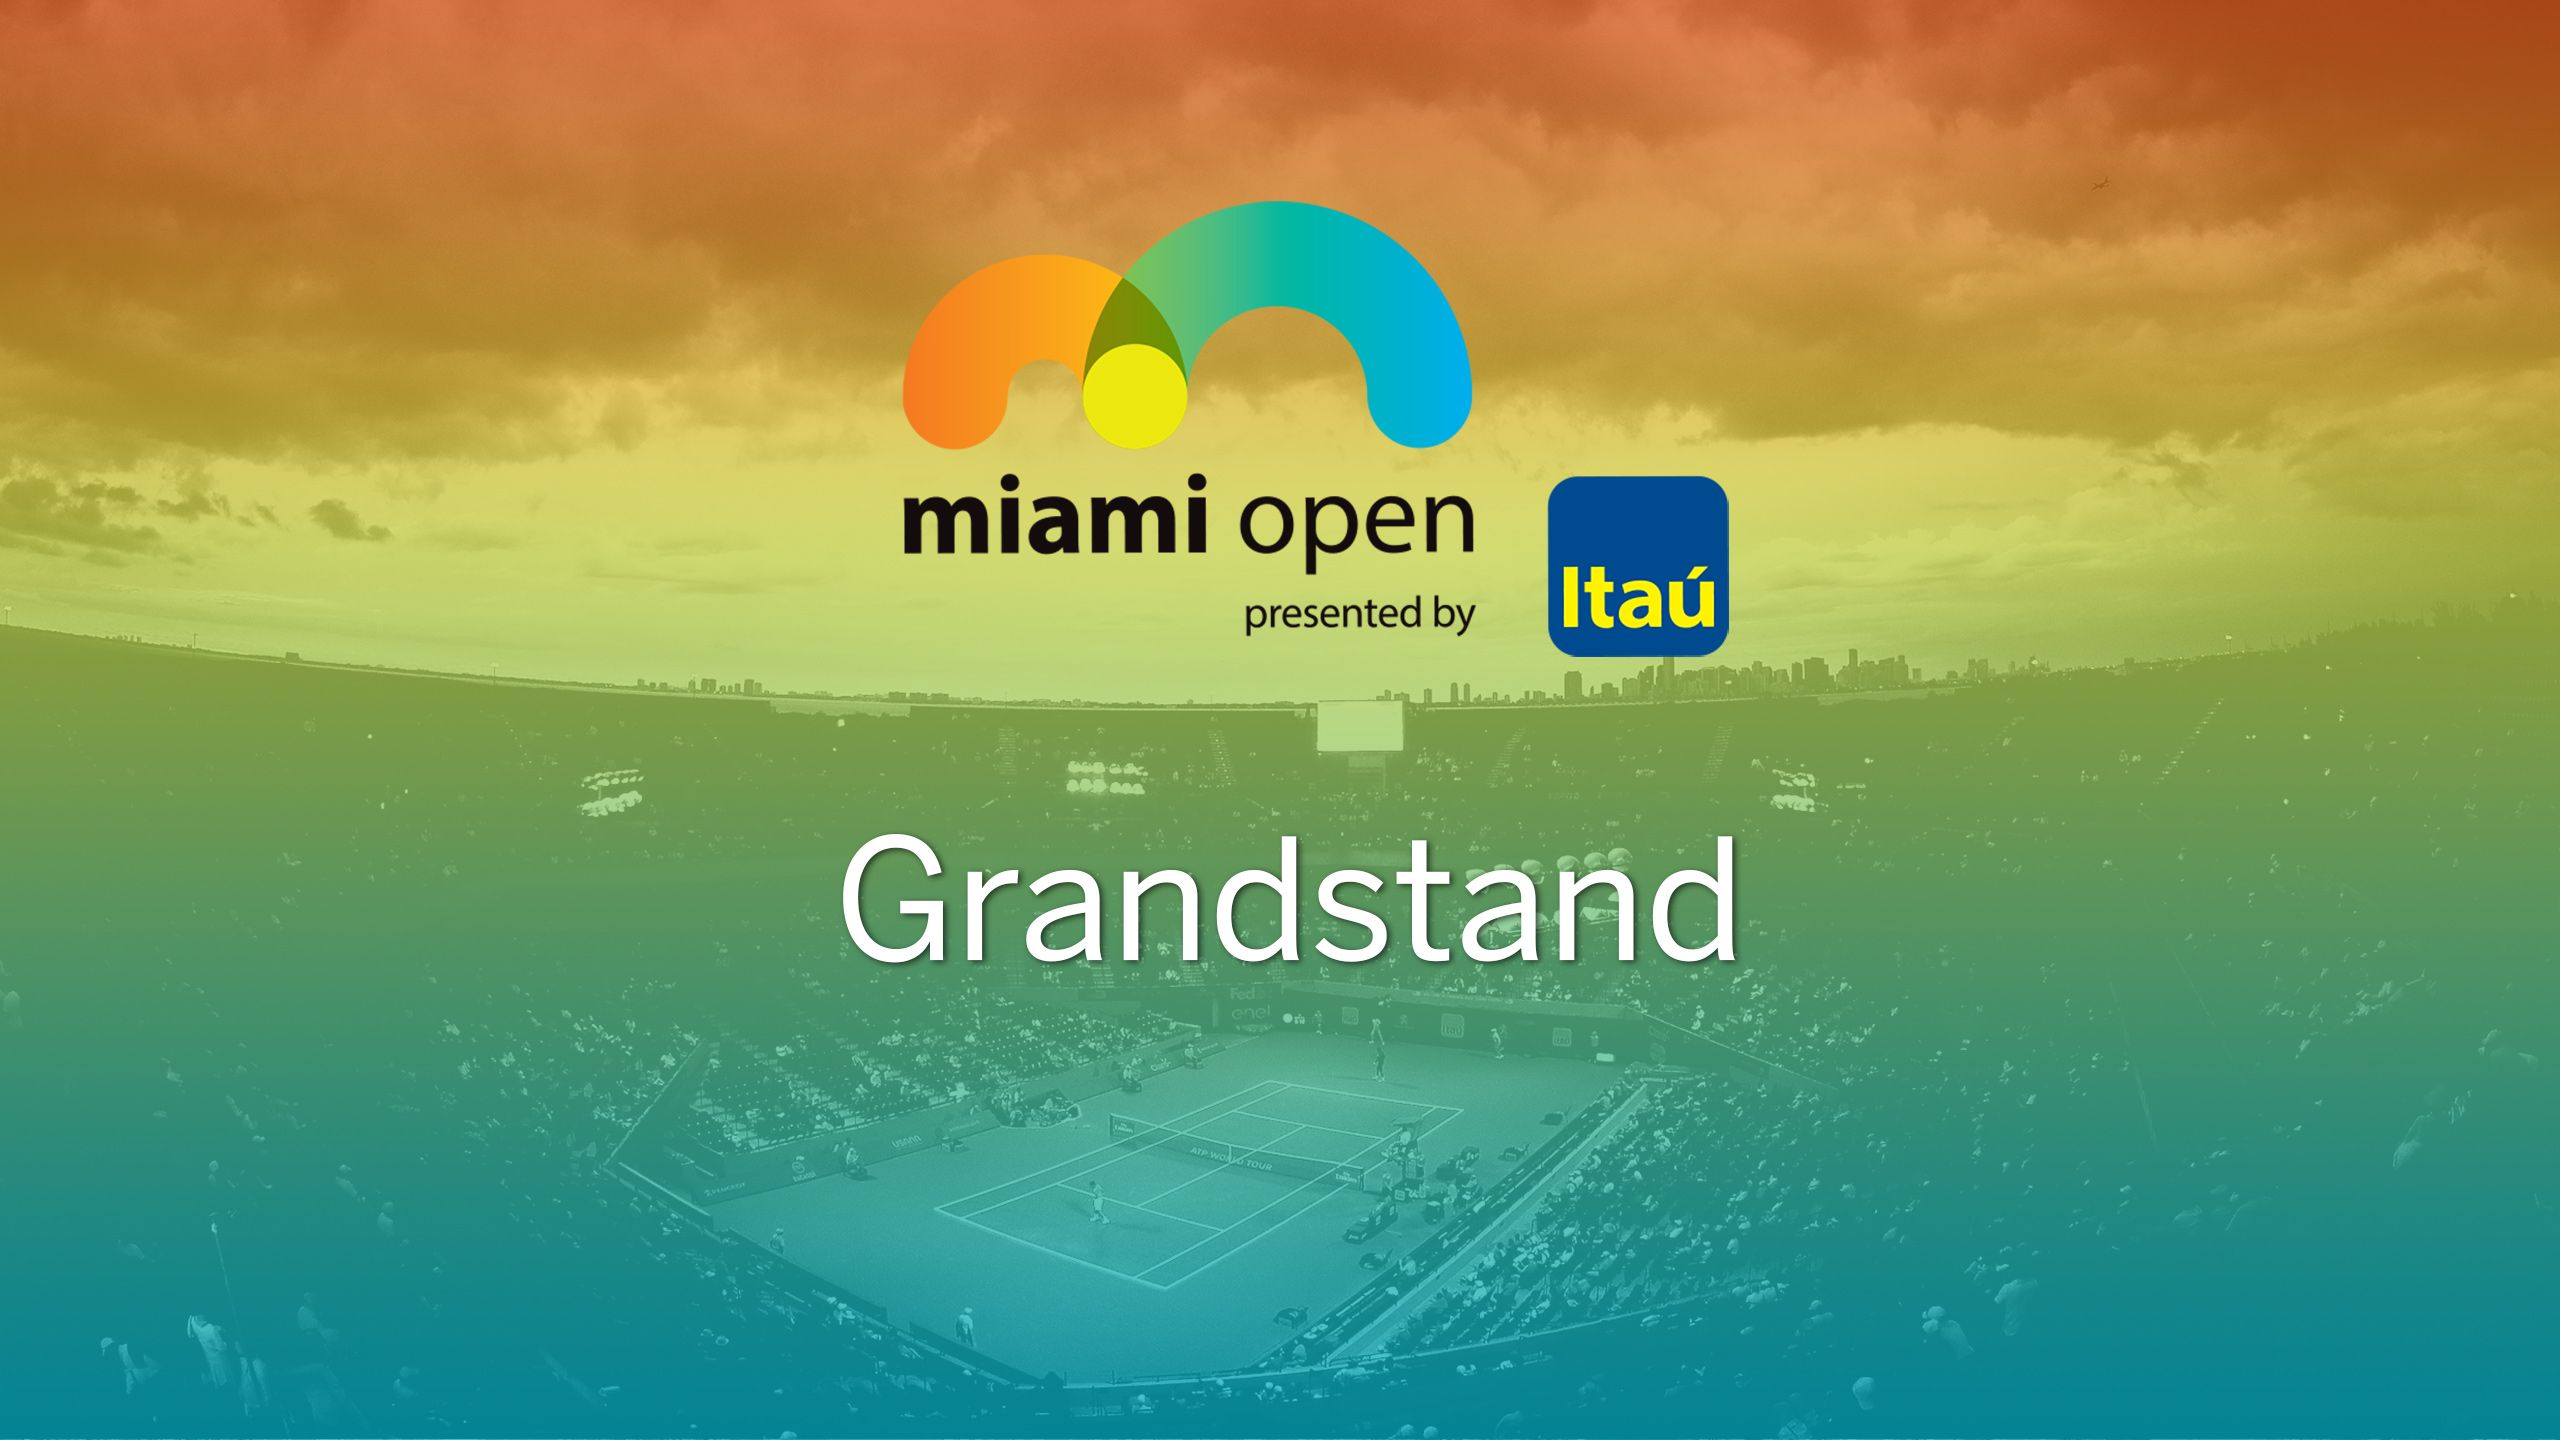 Miami Open - Grandstand (First Round)